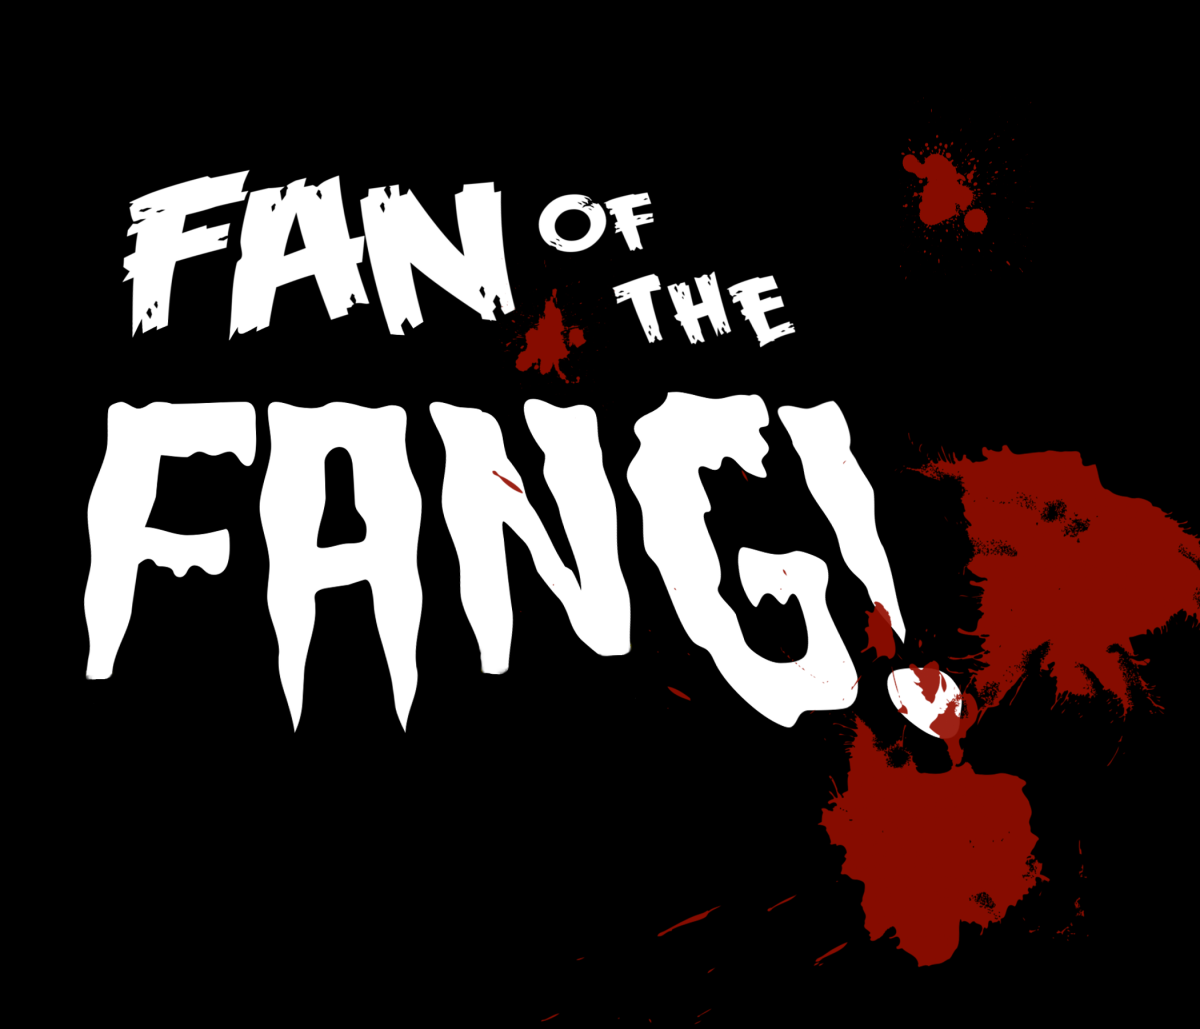 Fan of the Fang!